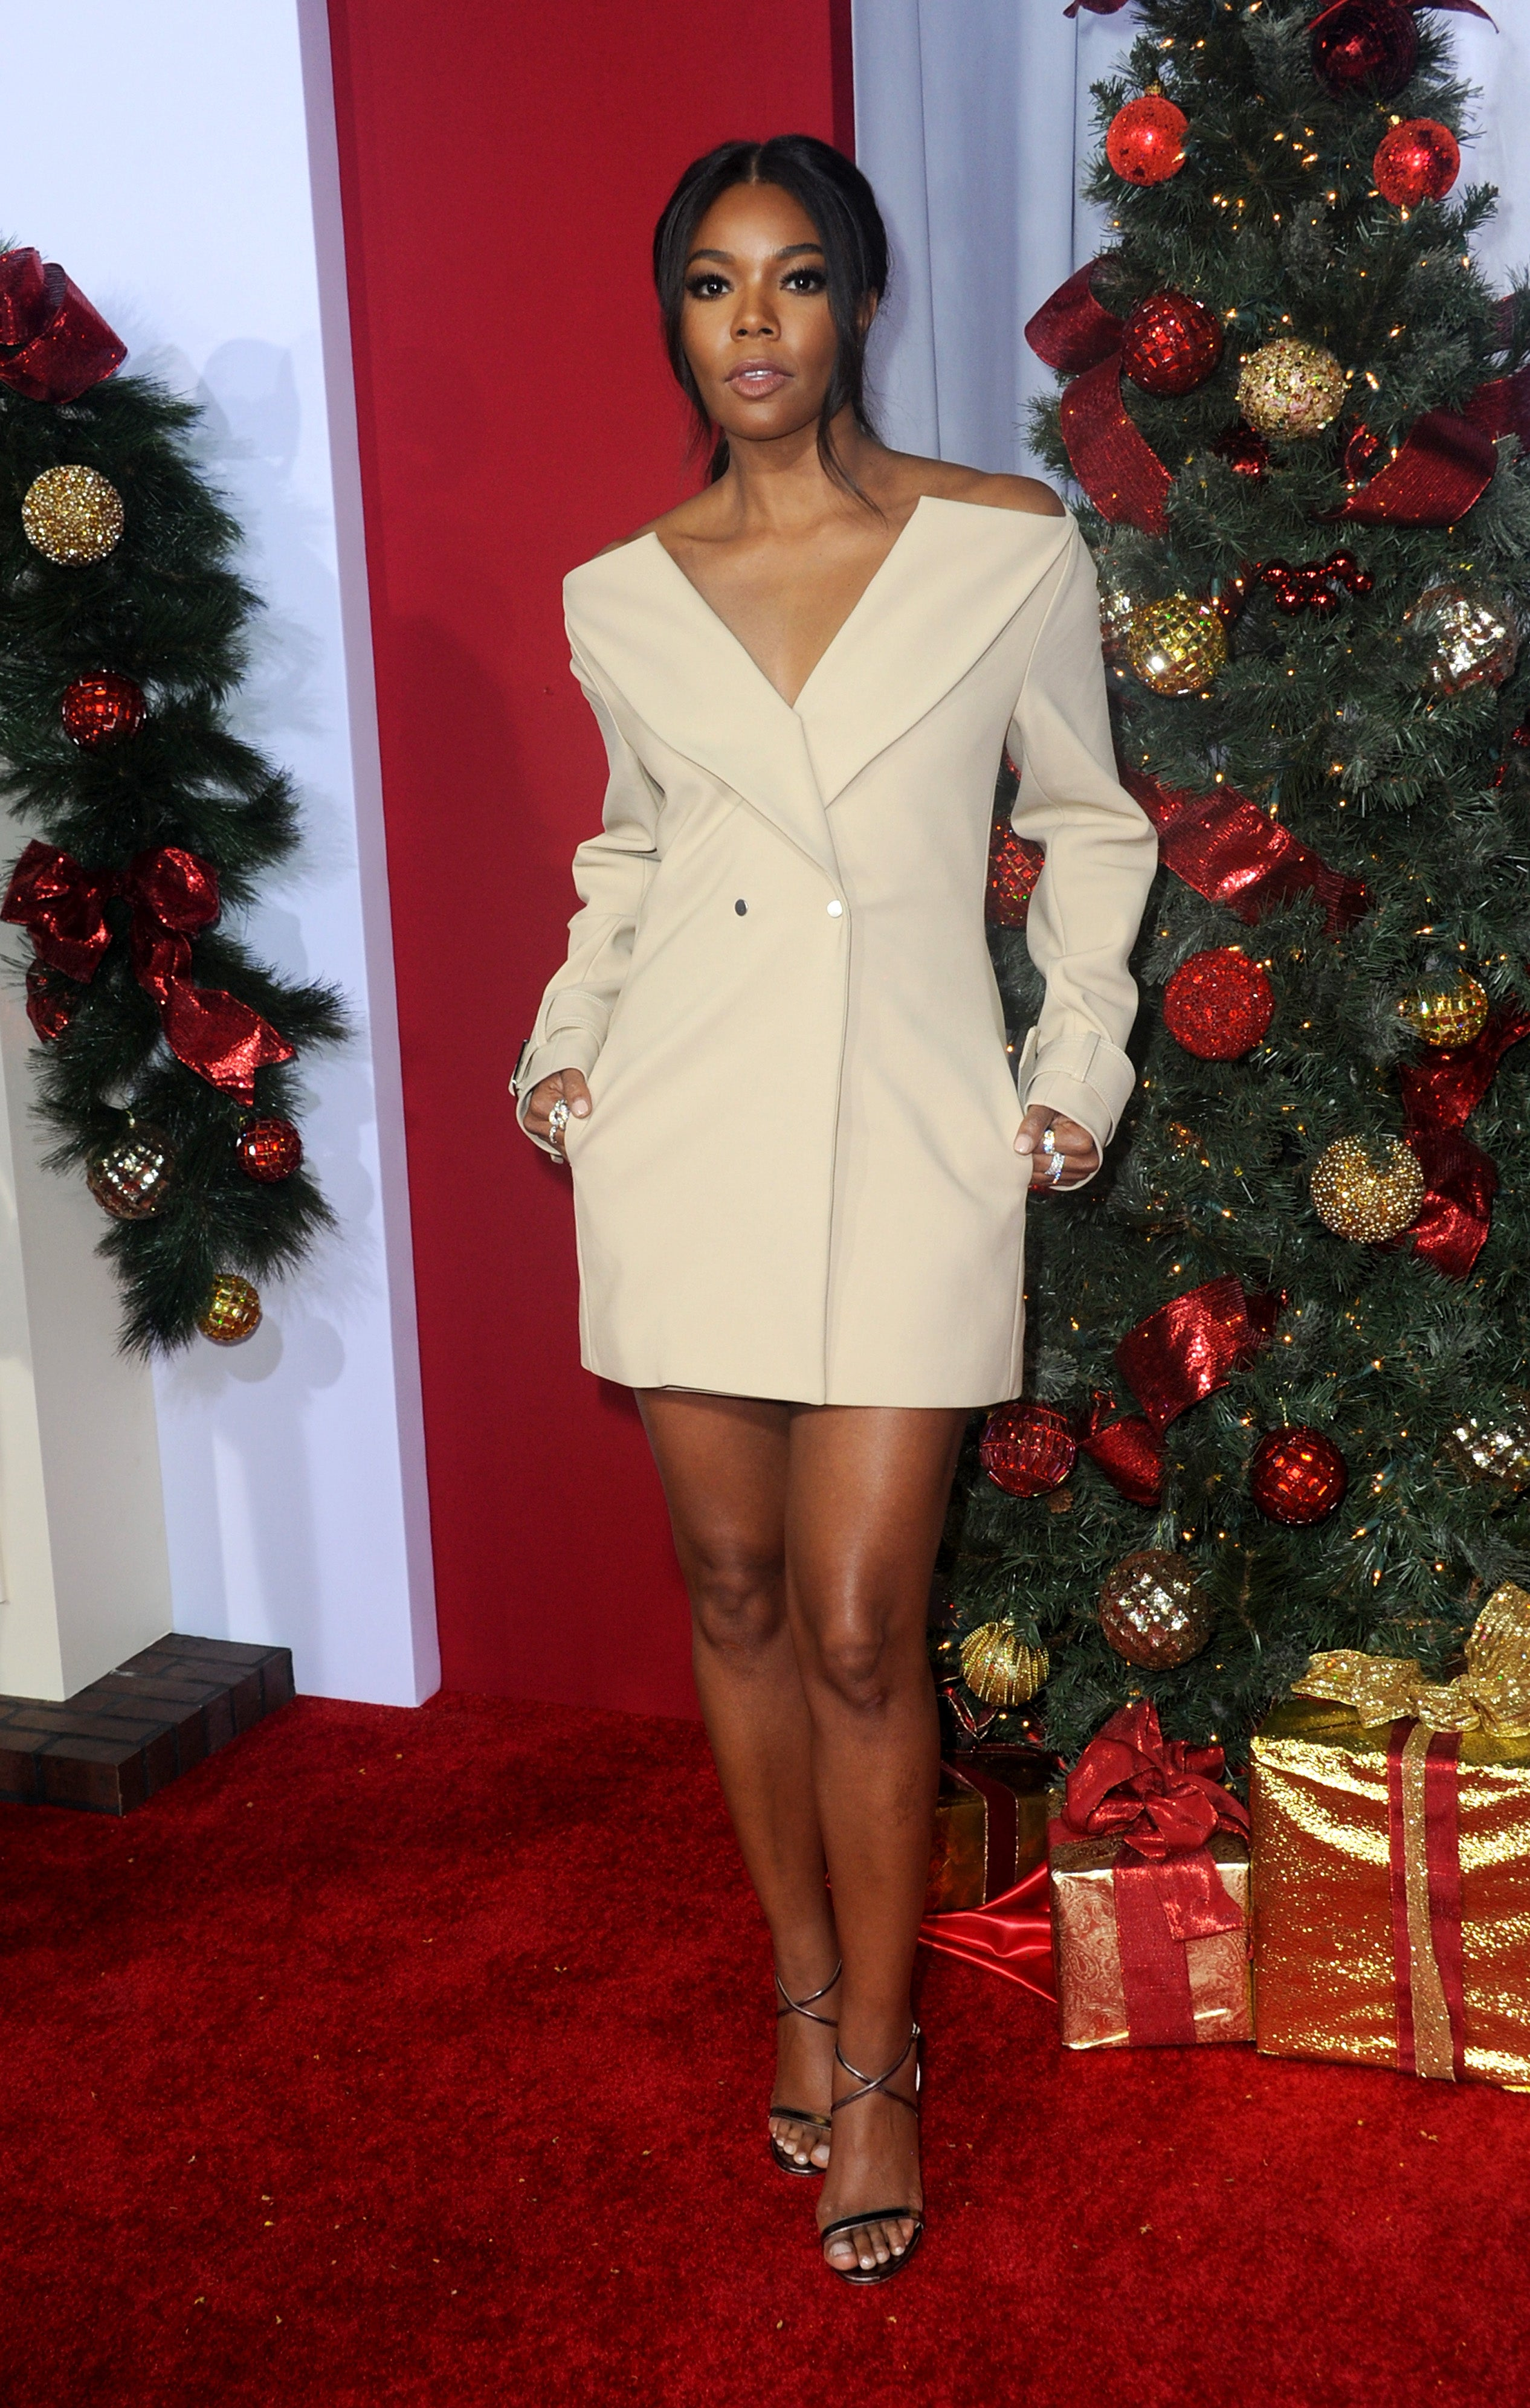 Almost Christmas Keri Hilson.Celebs At The Almost Christmas Premiere Essence